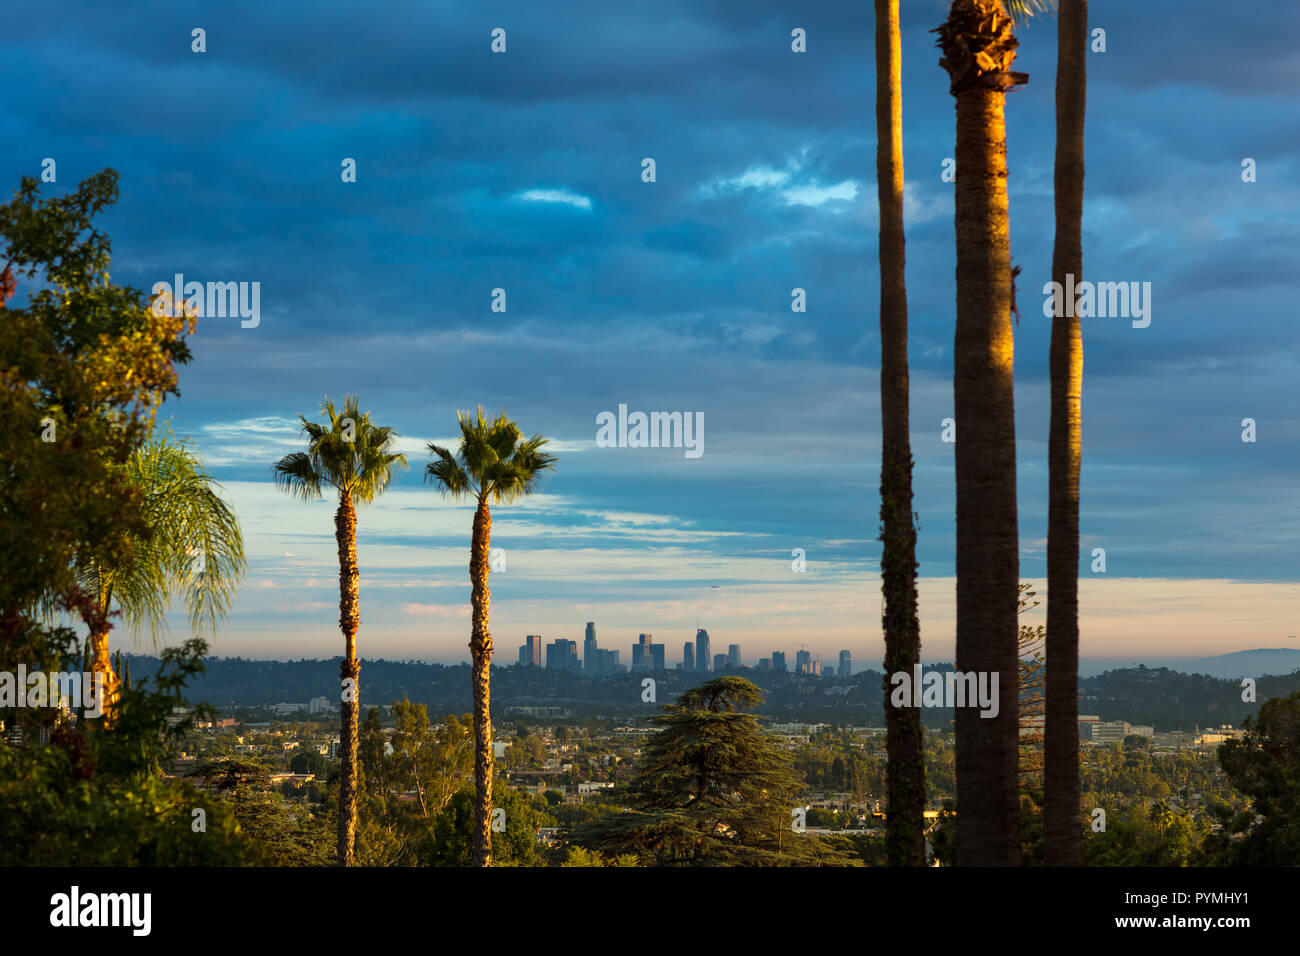 Los Angeles skyline in the distance Stock Photo